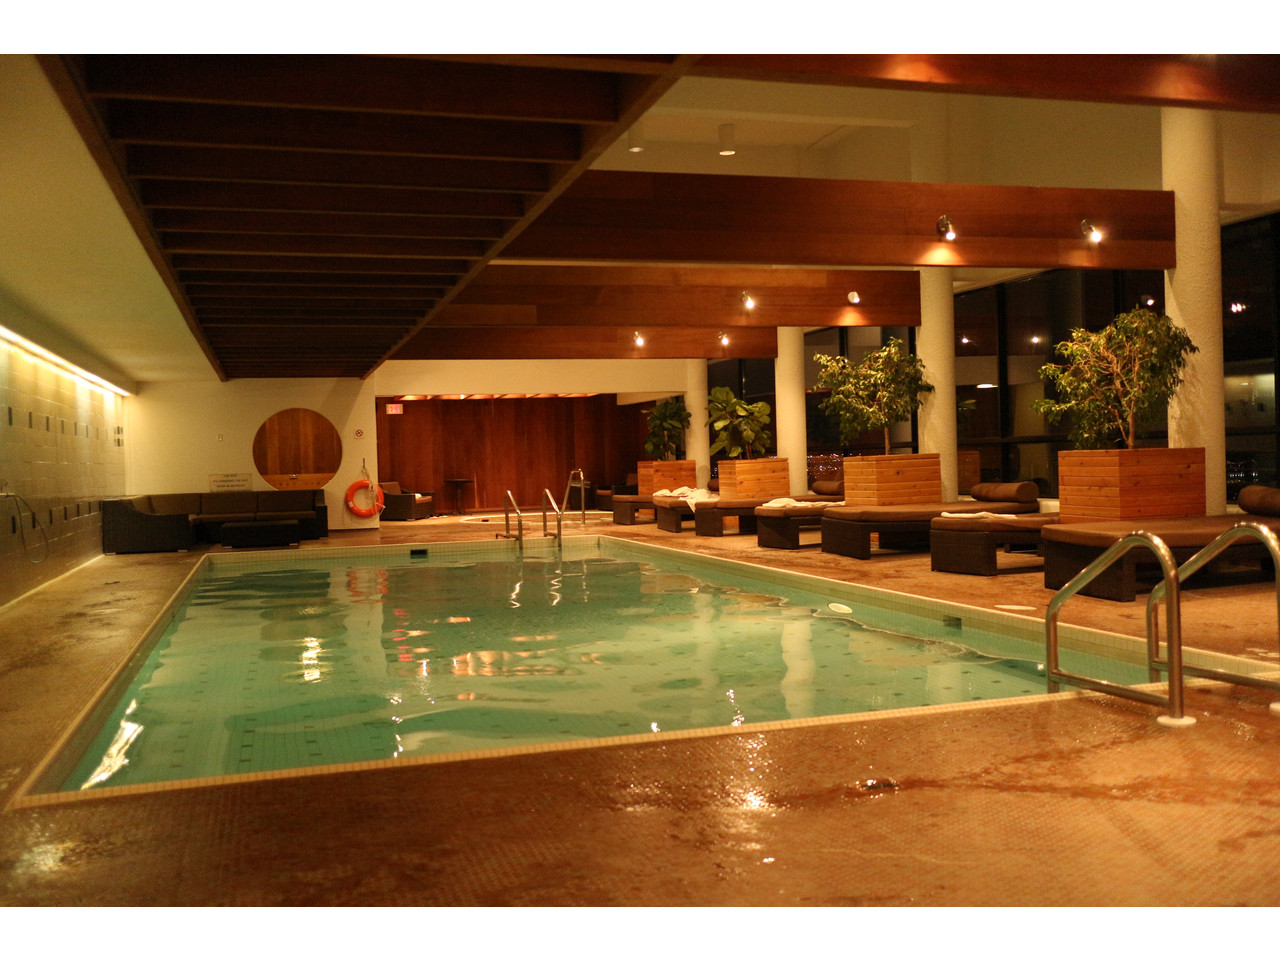 The Room Was Quite Spacious And Make It A Comfortable Stay It Offered Your Basic Hotel